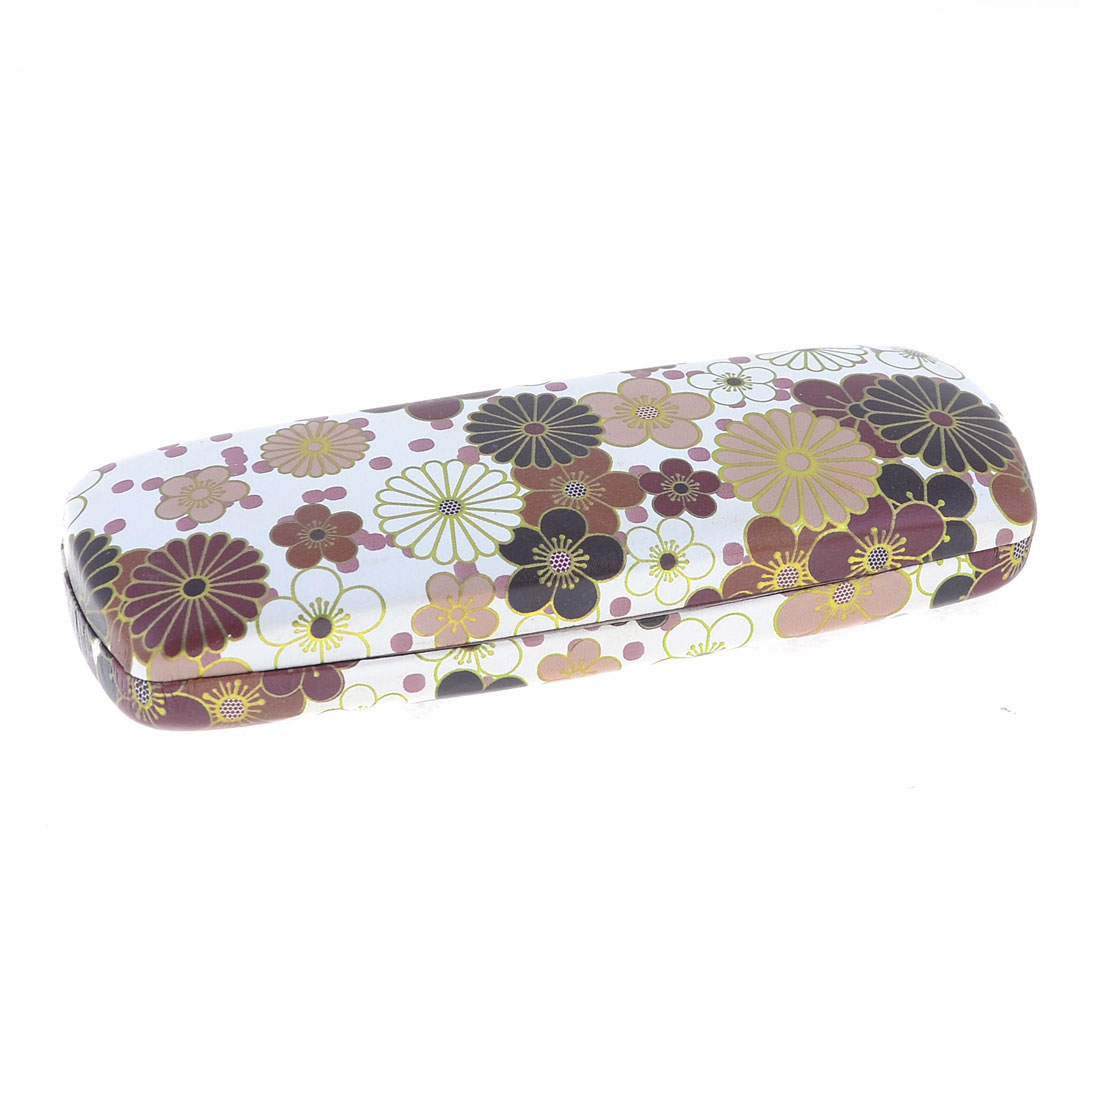 "6.1"" Length Brown Flowers Print White Faux Leather Eyeglasses Case Container"